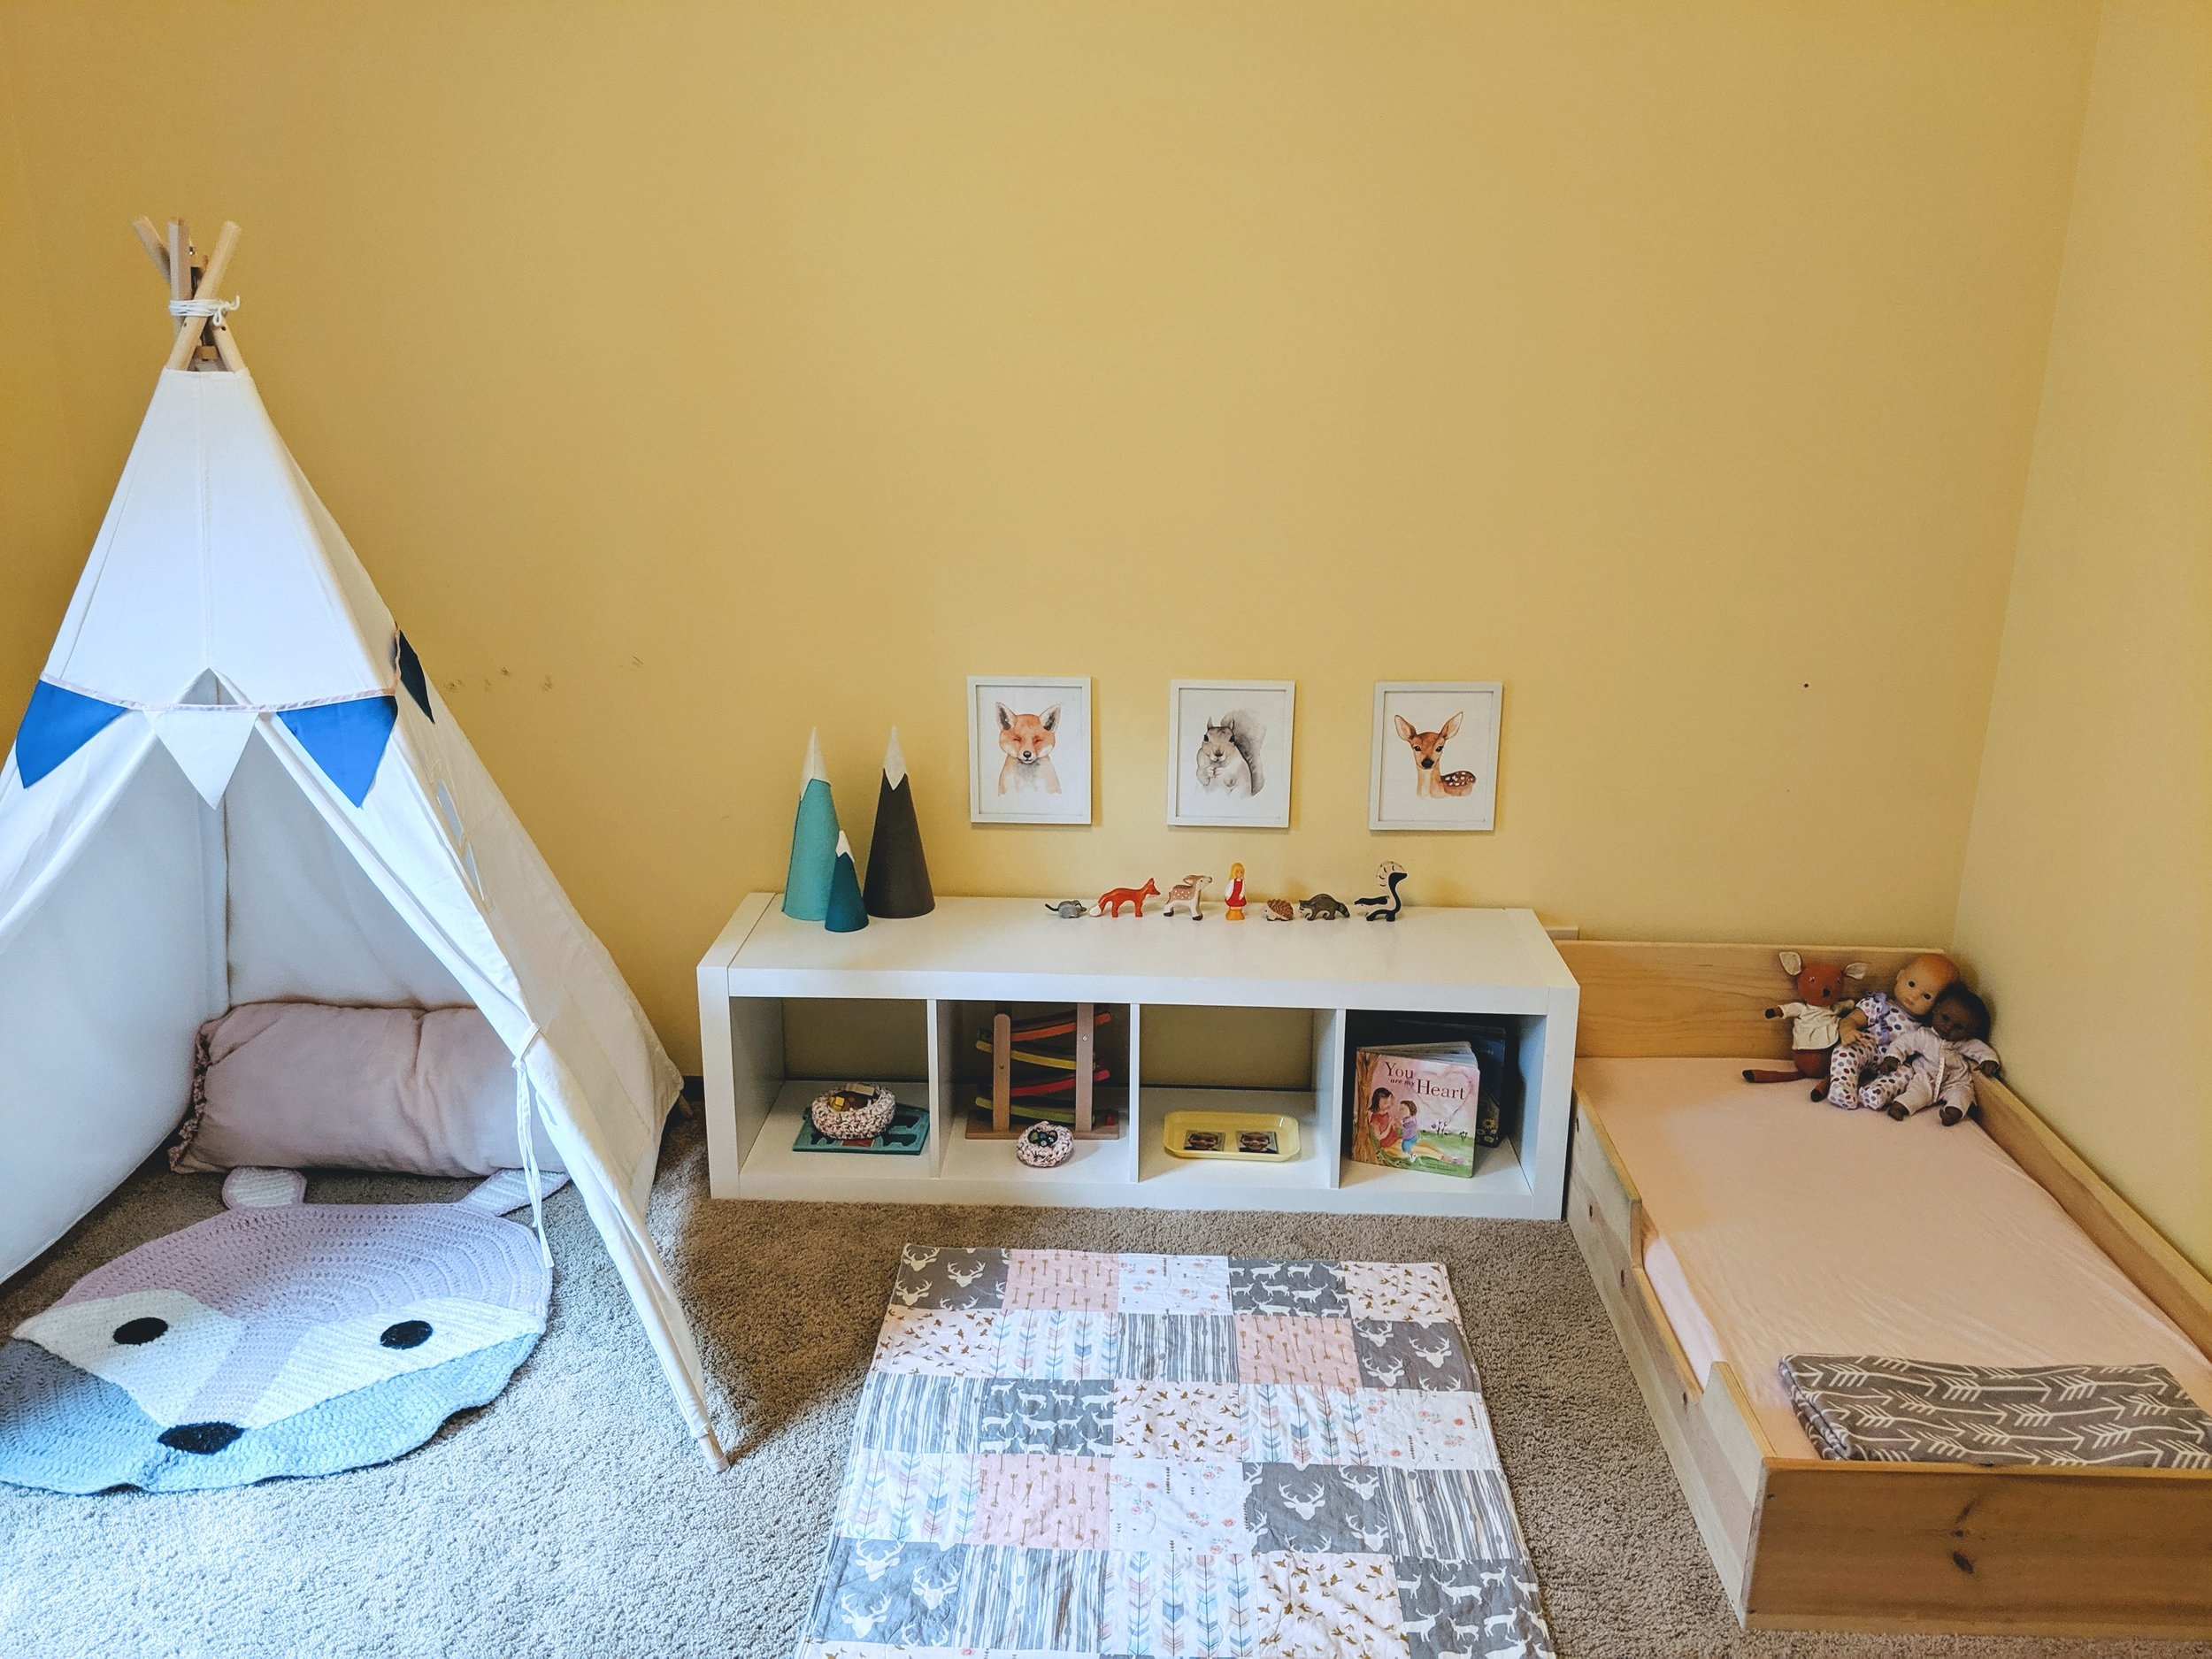 The Montessori Floor Bed and Self-Soothing - Montessori in Real Life